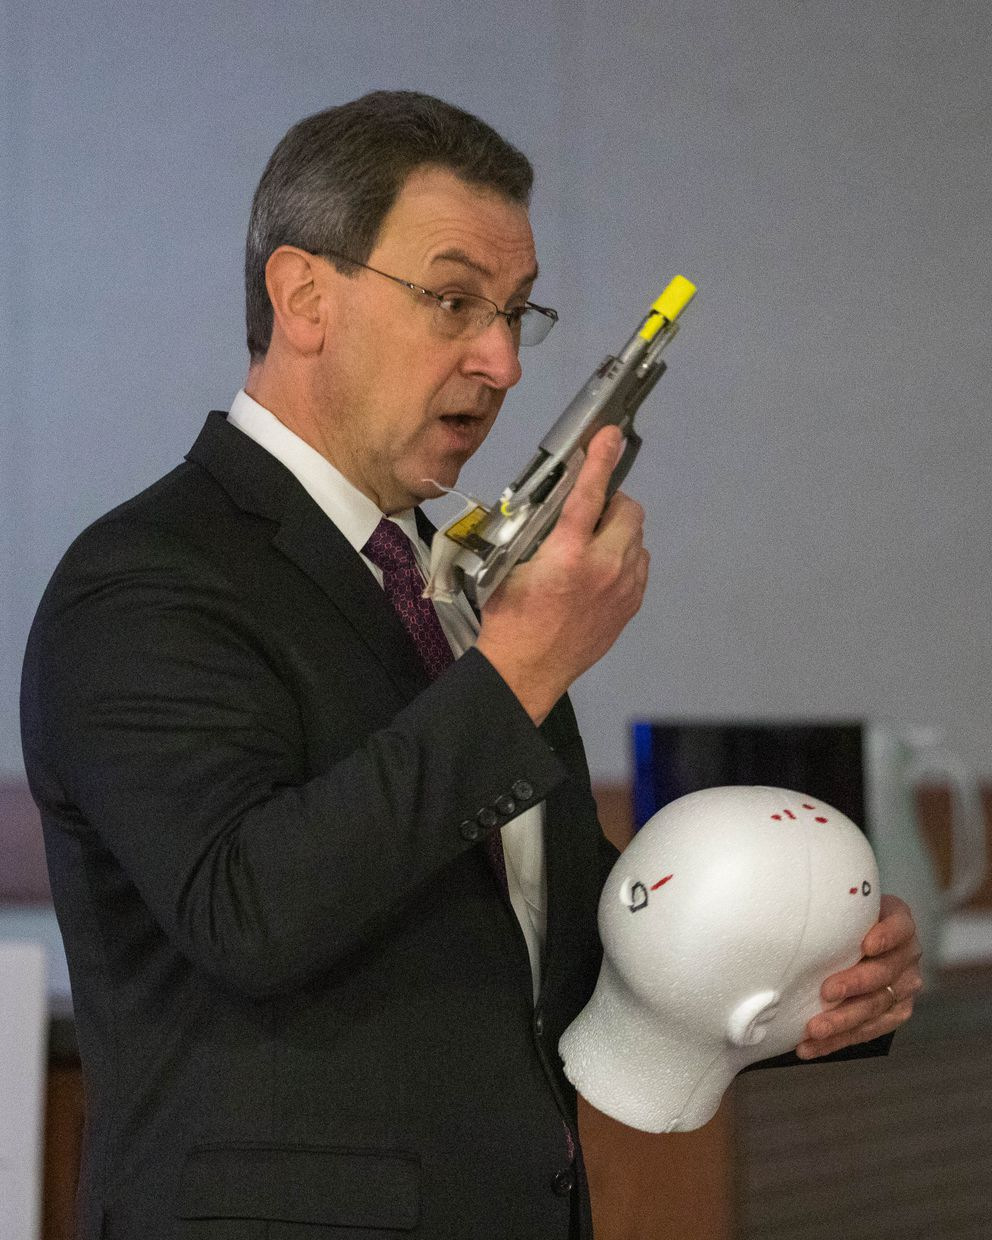 Palmer District Attorney Roman Kalytiak on Wednesday holds a gun that was used to pistol-whip David Grunwald. Kalytiak is also holding a model of the victim's head, showing injuries from the beating and a gunshot. (Loren Holmes / ADN)